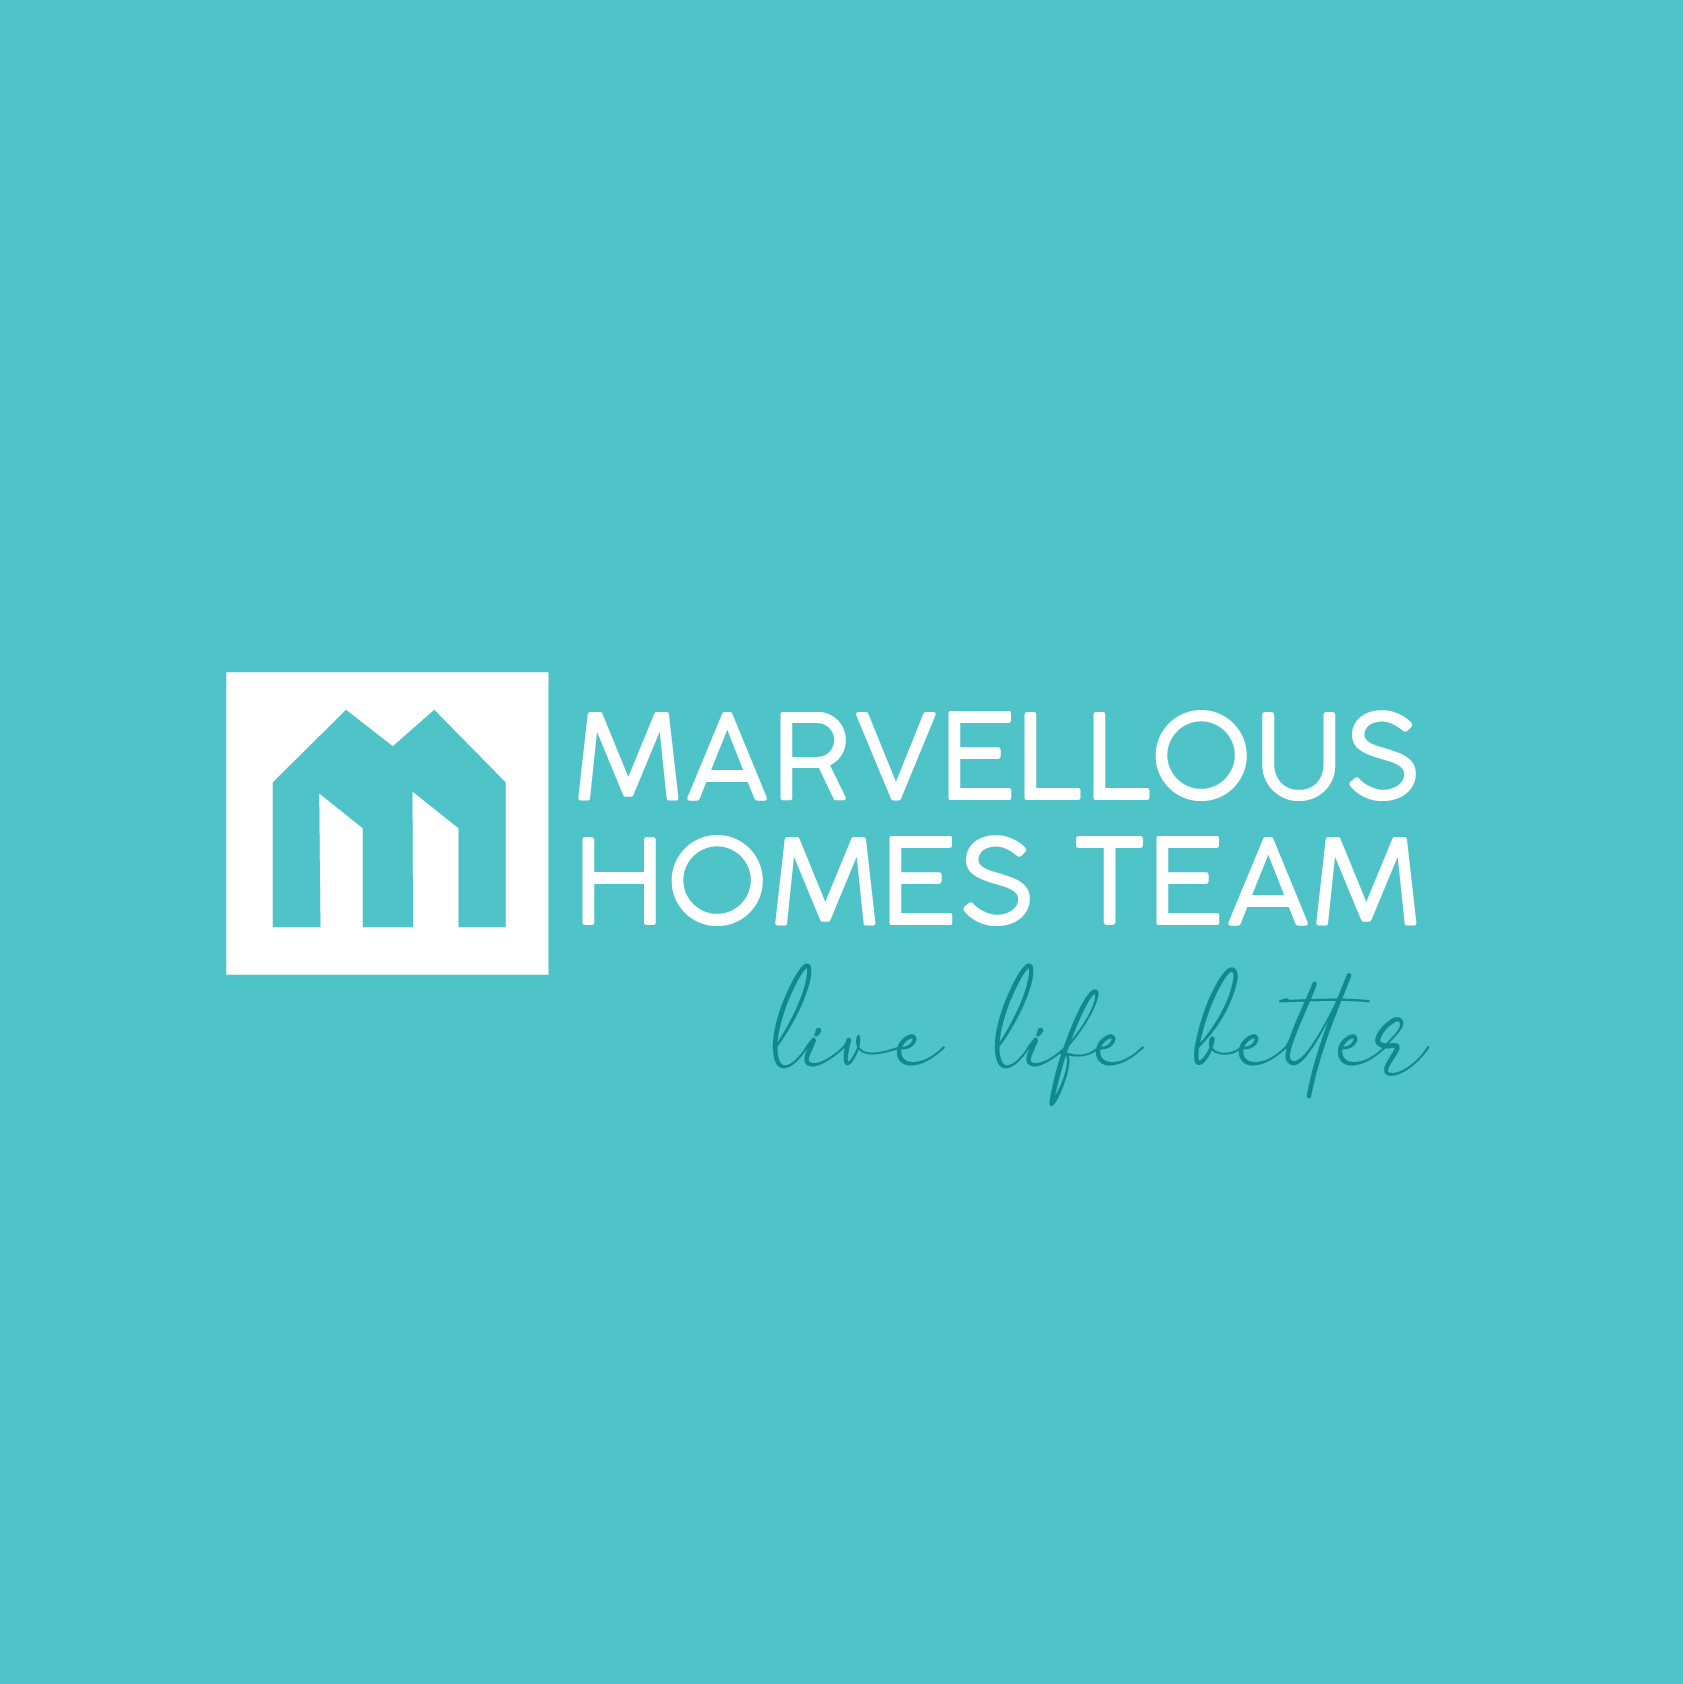 Marvellous Homes Blog